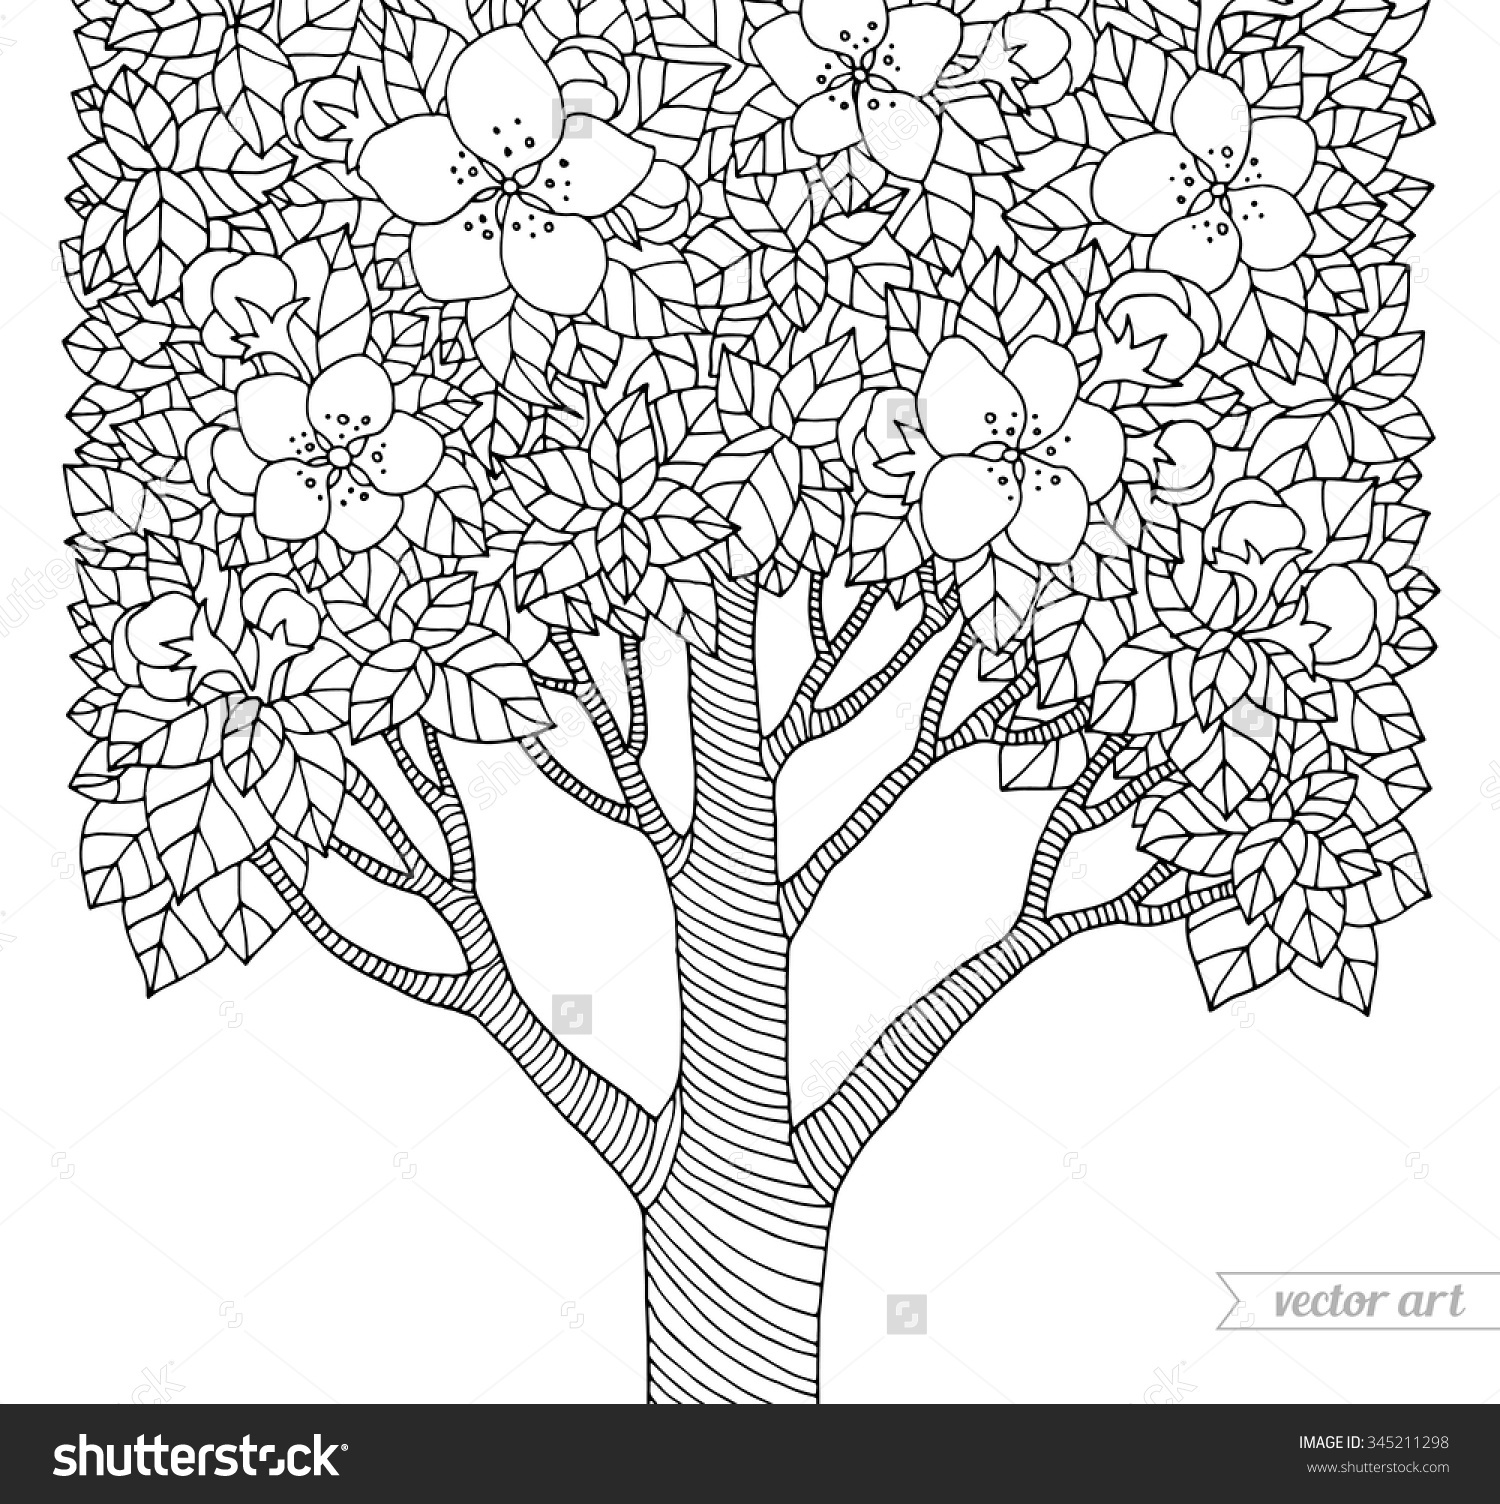 1500x1504 Coloring Pages Of Spring Trees Inspiration Flowering Dogwood Tree